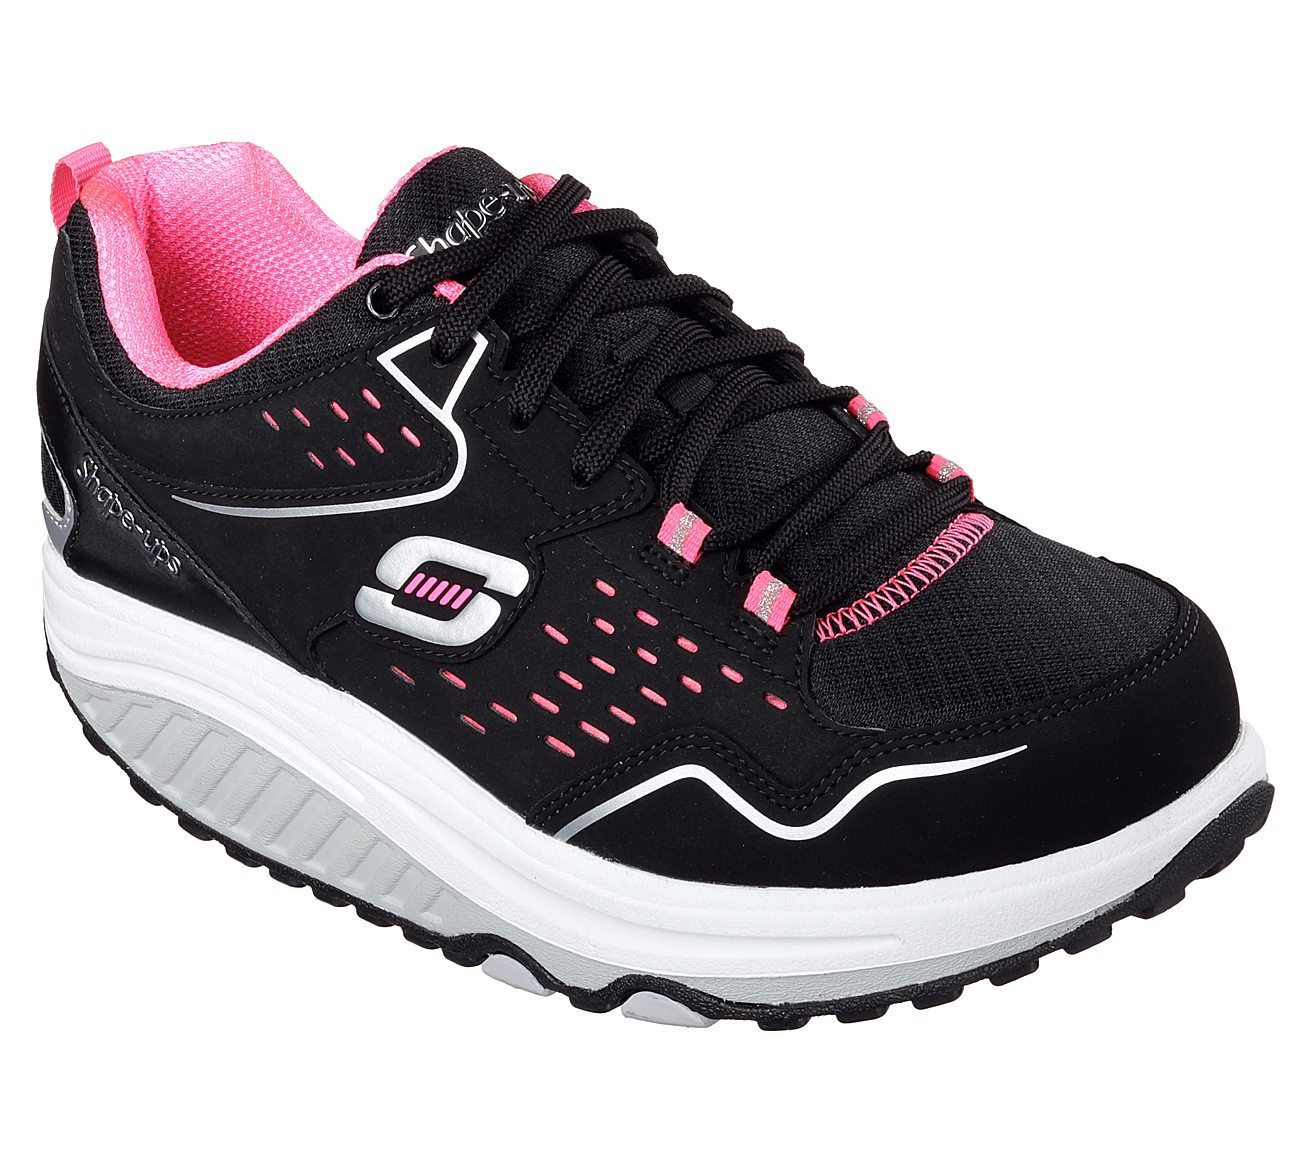 9c7e76ecdef Buy SKECHERS Shape-ups 2.0 - Everyday Comfort Shape-ups Shoes only ...